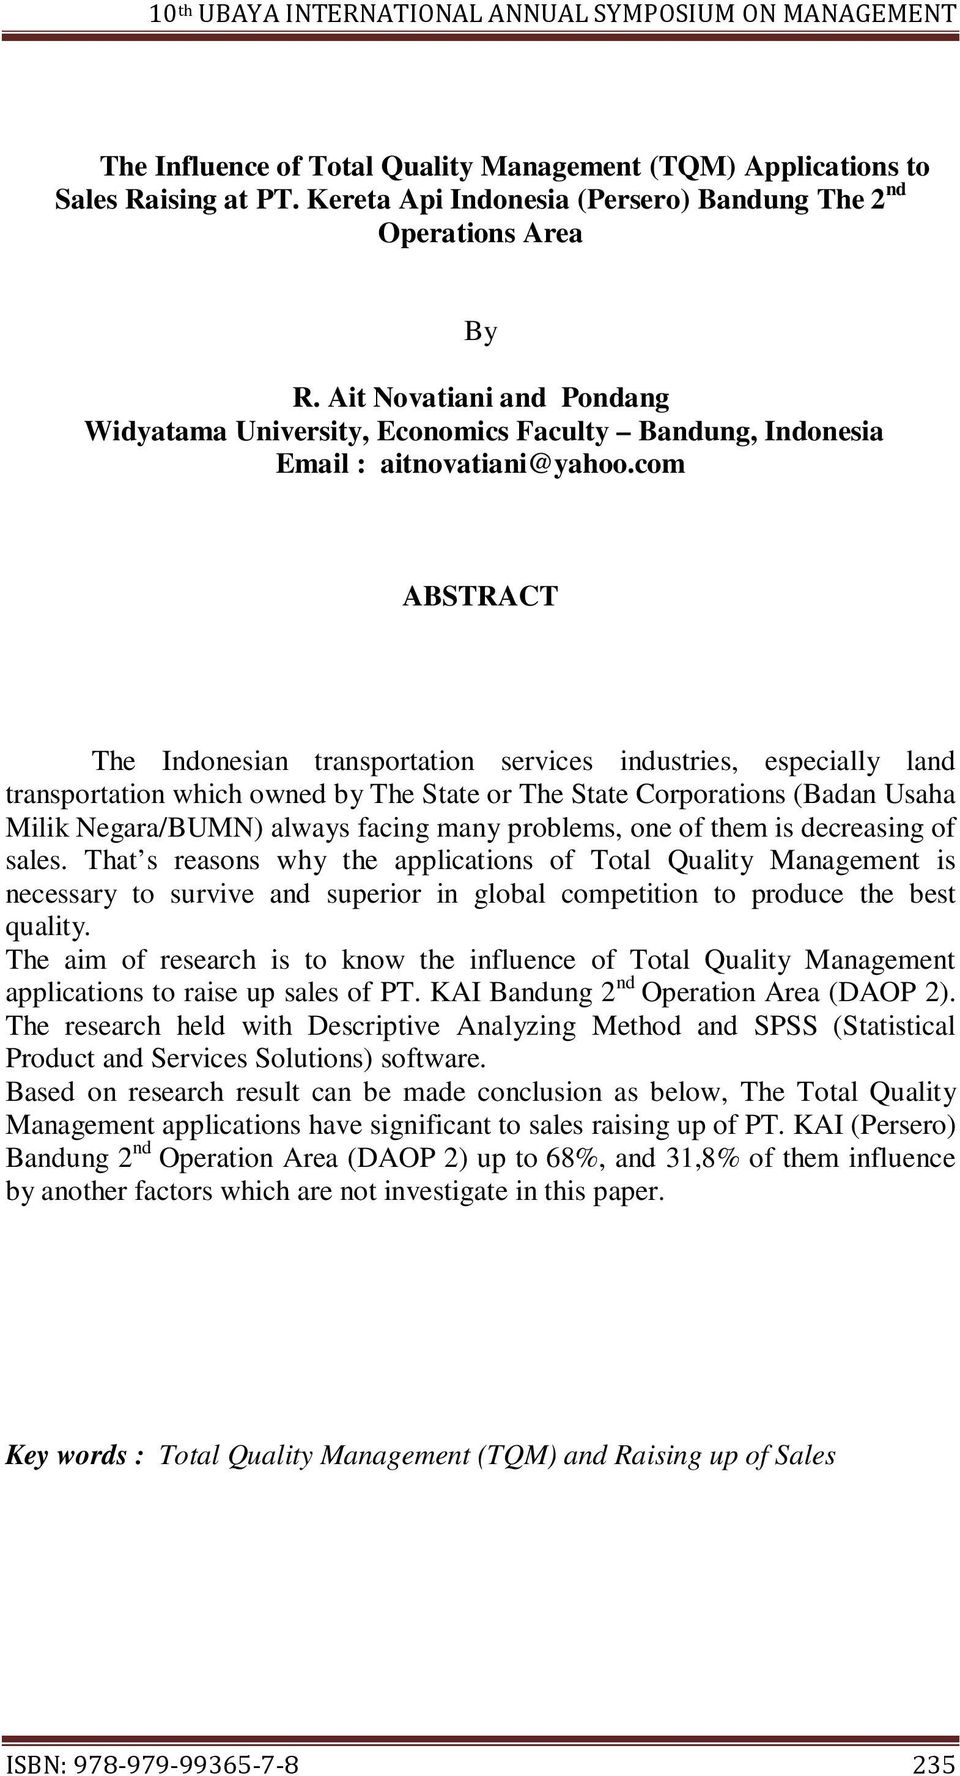 com ABSTRACT The Indonesian transportation services industries, especially land transportation which owned by The State or The State Corporations (Badan Usaha Milik Negara/BUMN) always facing many